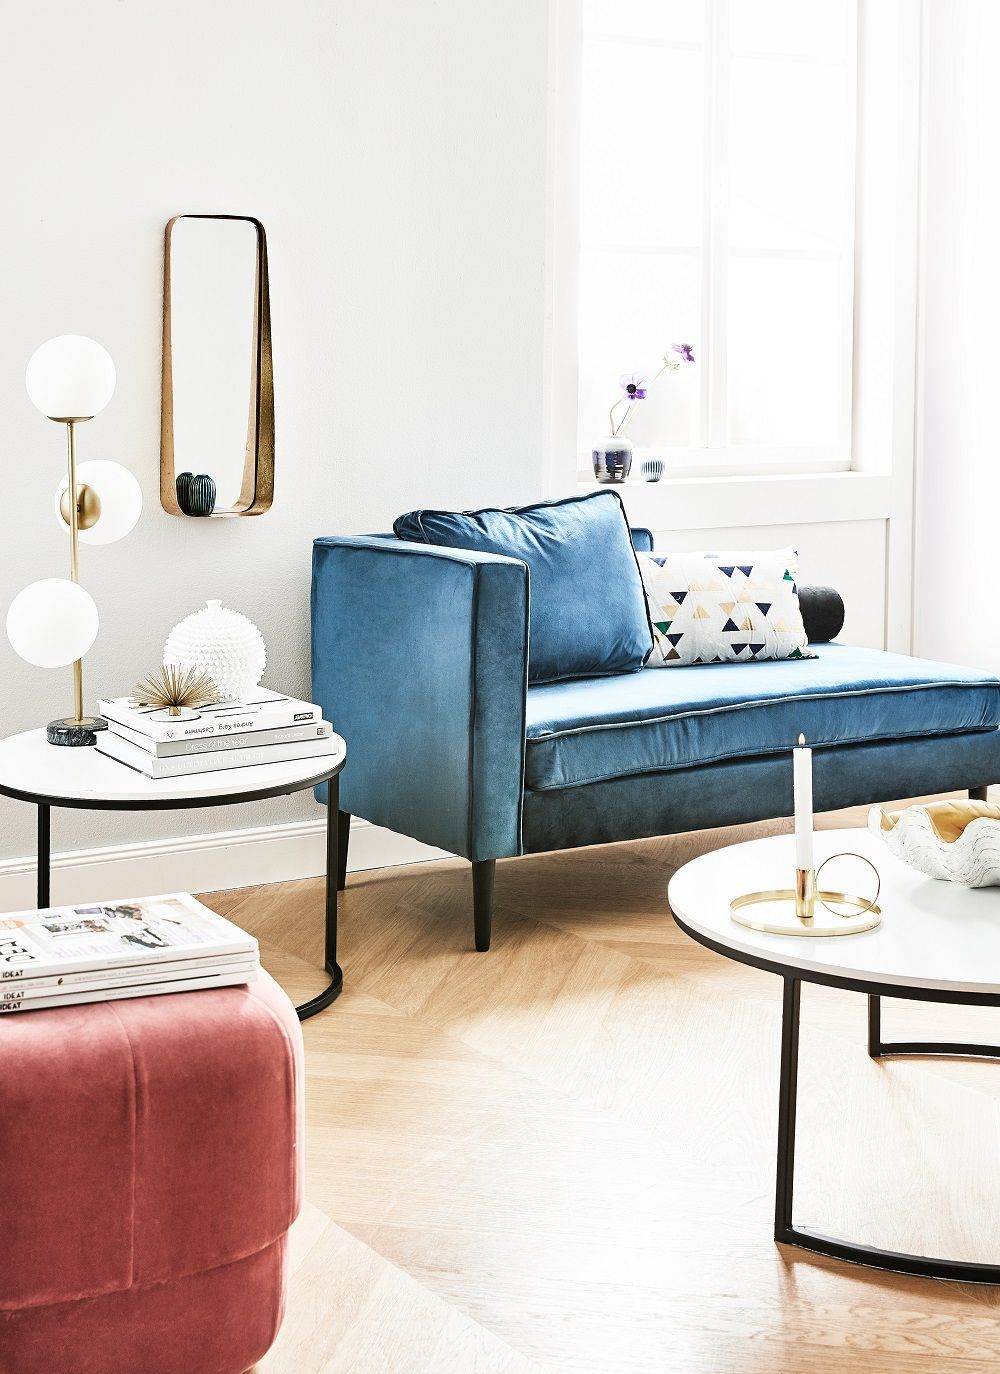 Was Ist Ein Pouf samt pouf circus interiors interior design inspiration and living